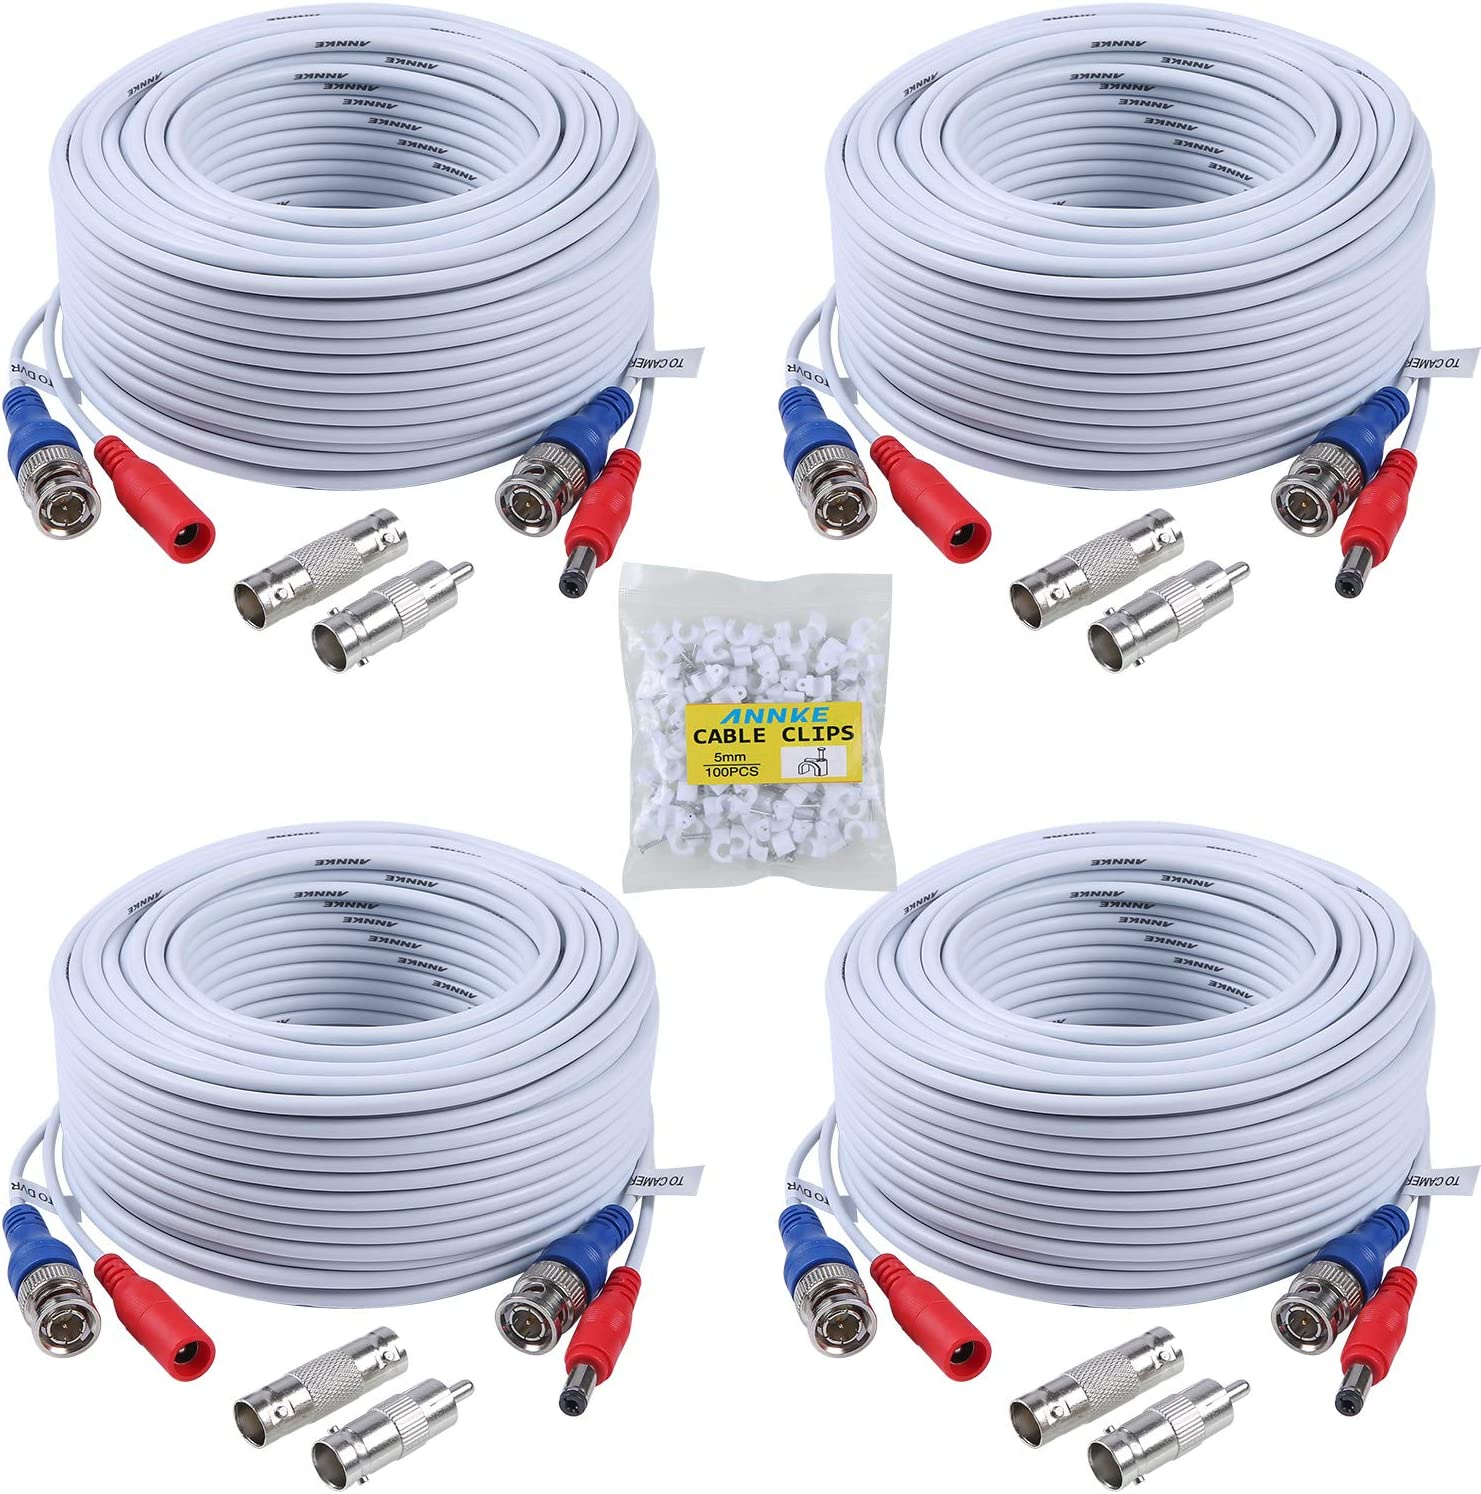 amazon com surveillance camera cables electronicsannke (4) 30m 100ft all in one bnc video power cables